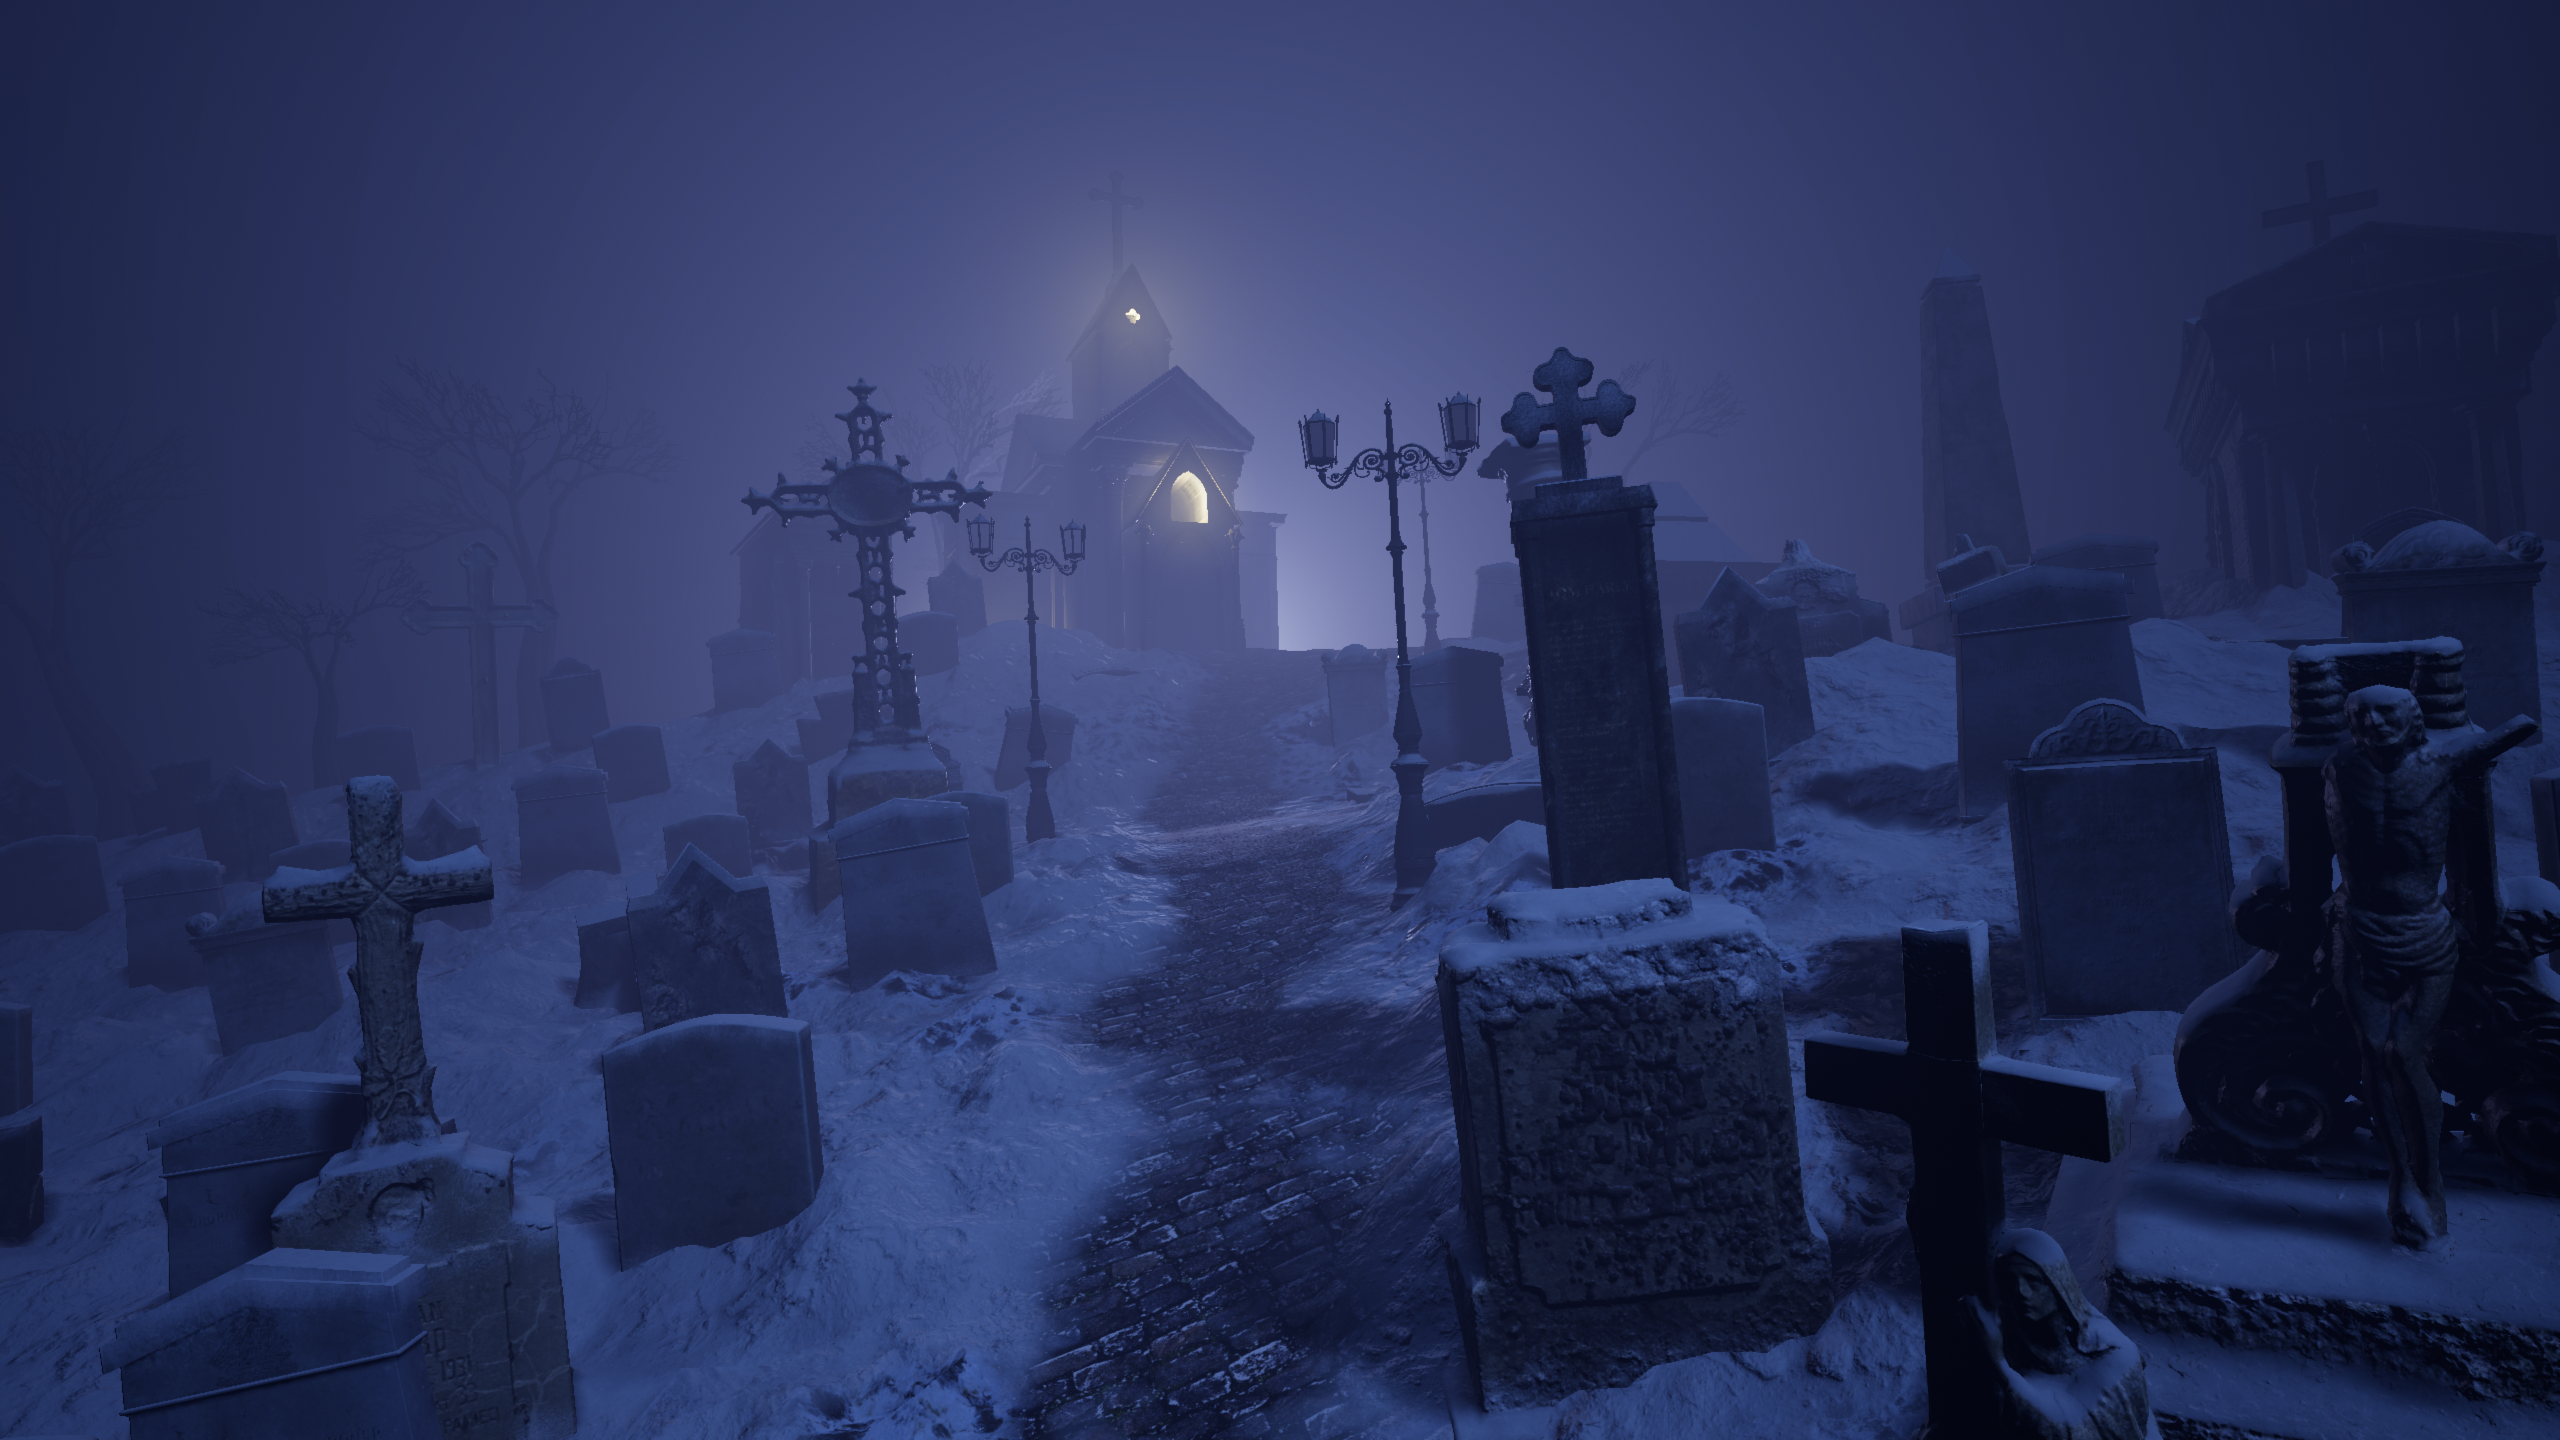 [News] Chained: A Victorian Nightmare Coming to VR Platforms